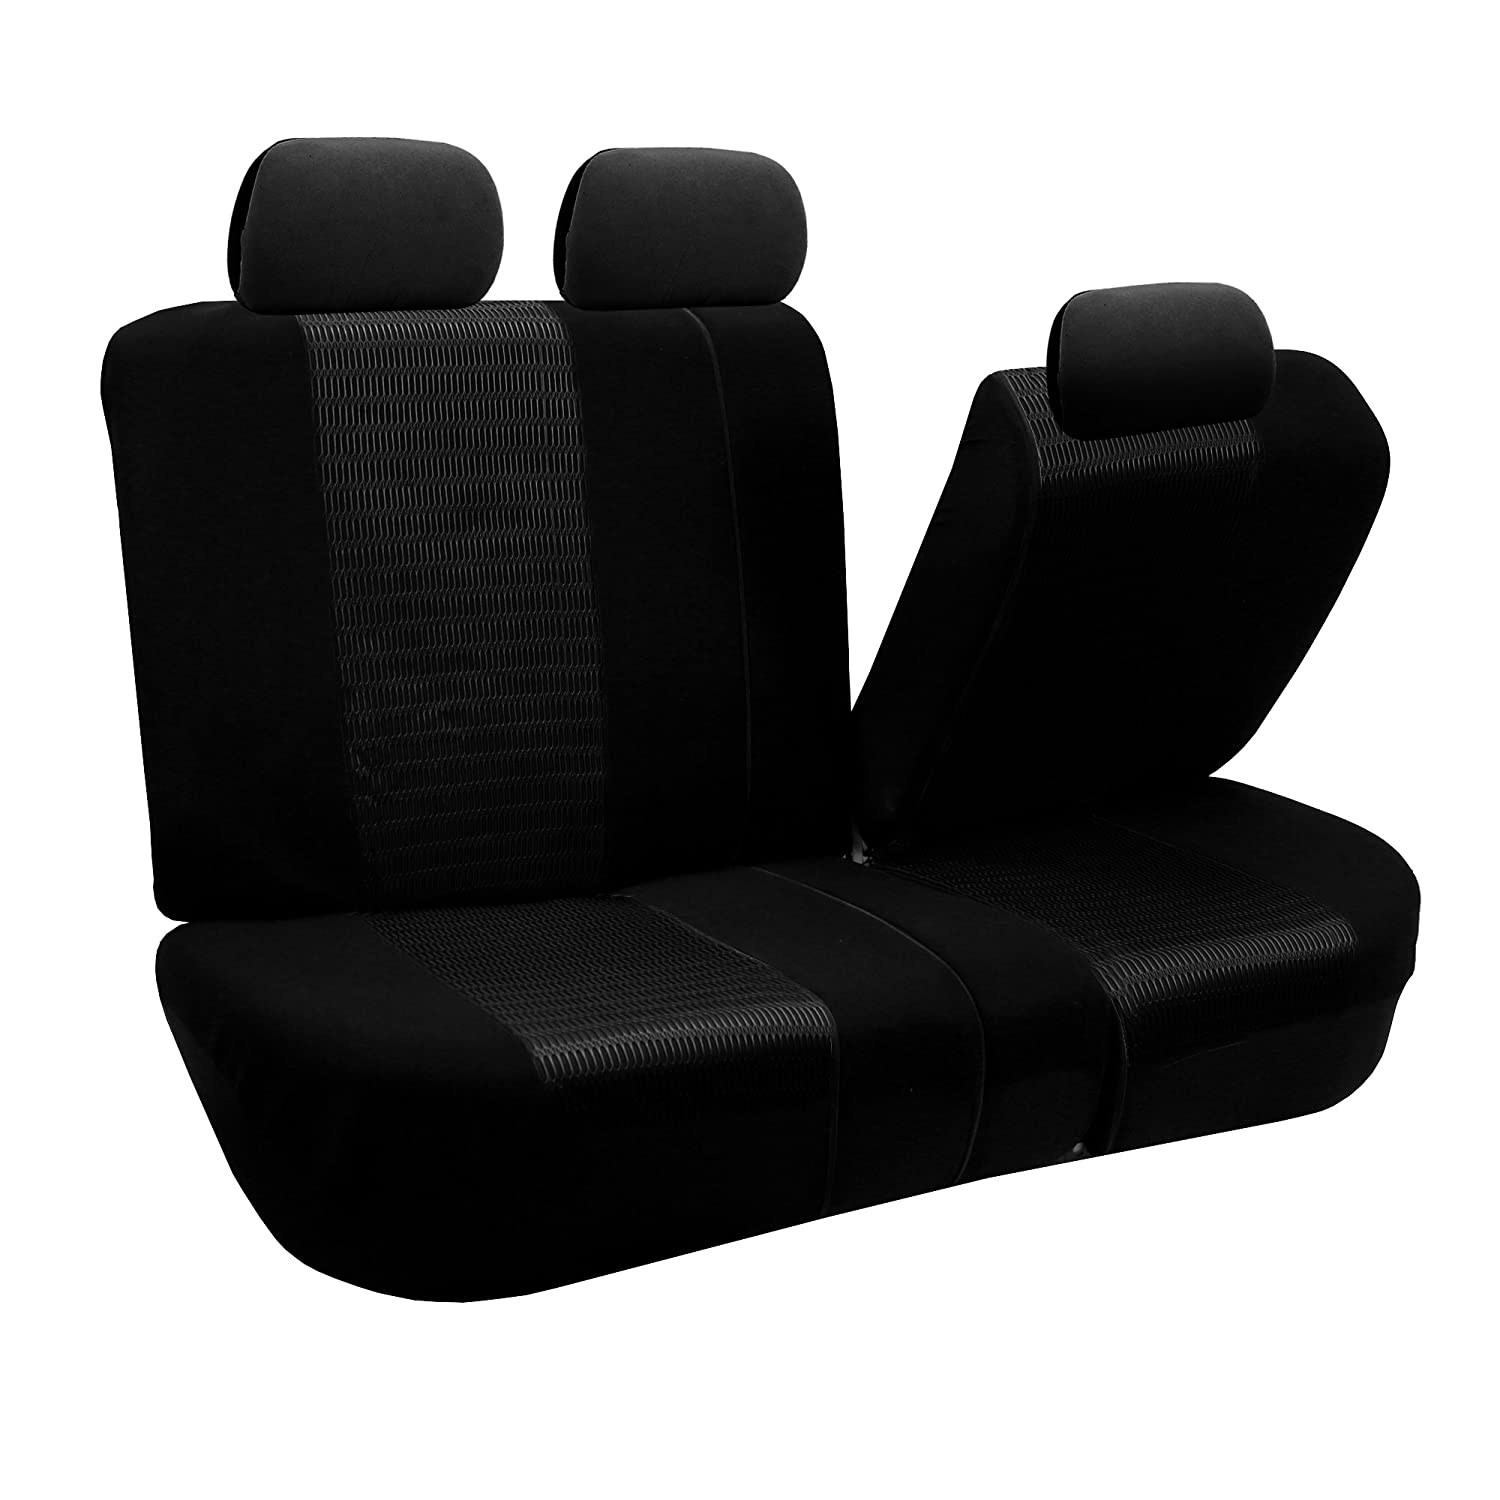 Black FH Group Universal Fit Full Set Trendy Elegance Car Seat Cover, FB060BLACK115 FH-FB060115, Airbag compatible and Split Bench, Fit Most Car, Truck, Suv, or Van